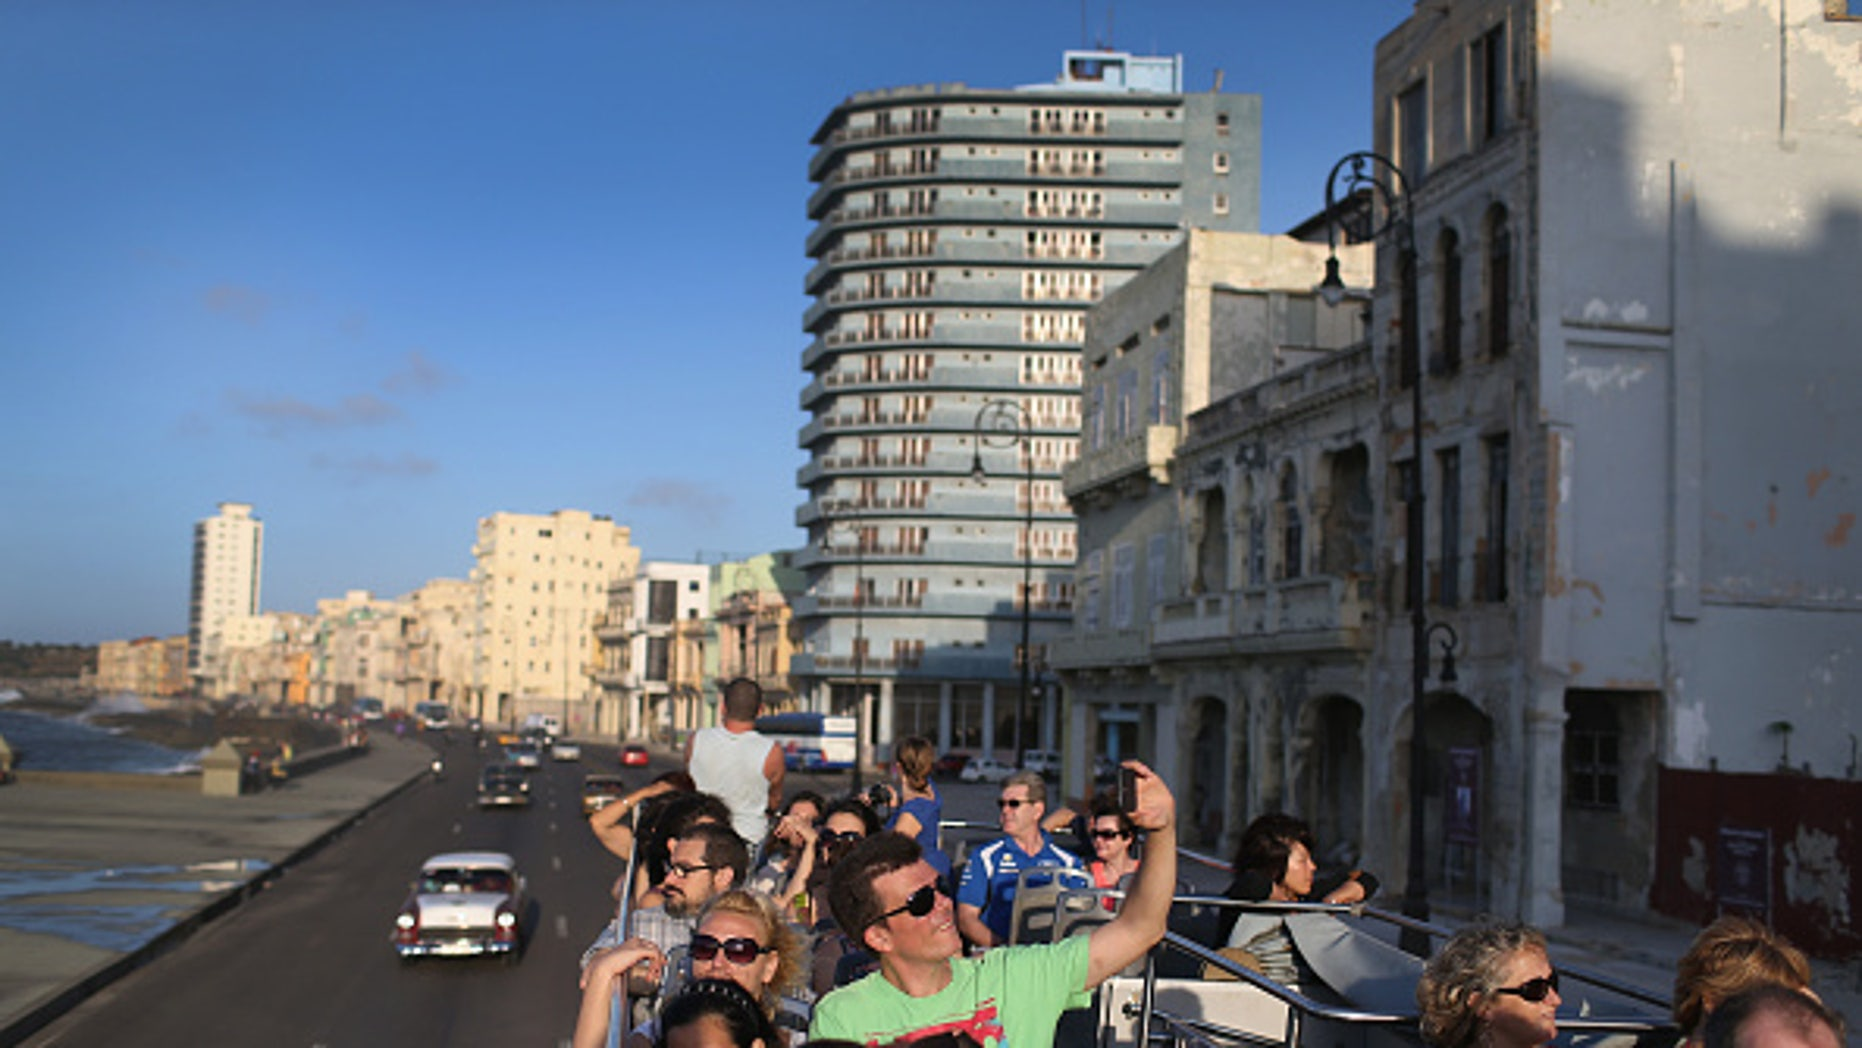 Tourists take in the sites from a double decker tour bus of Havana.